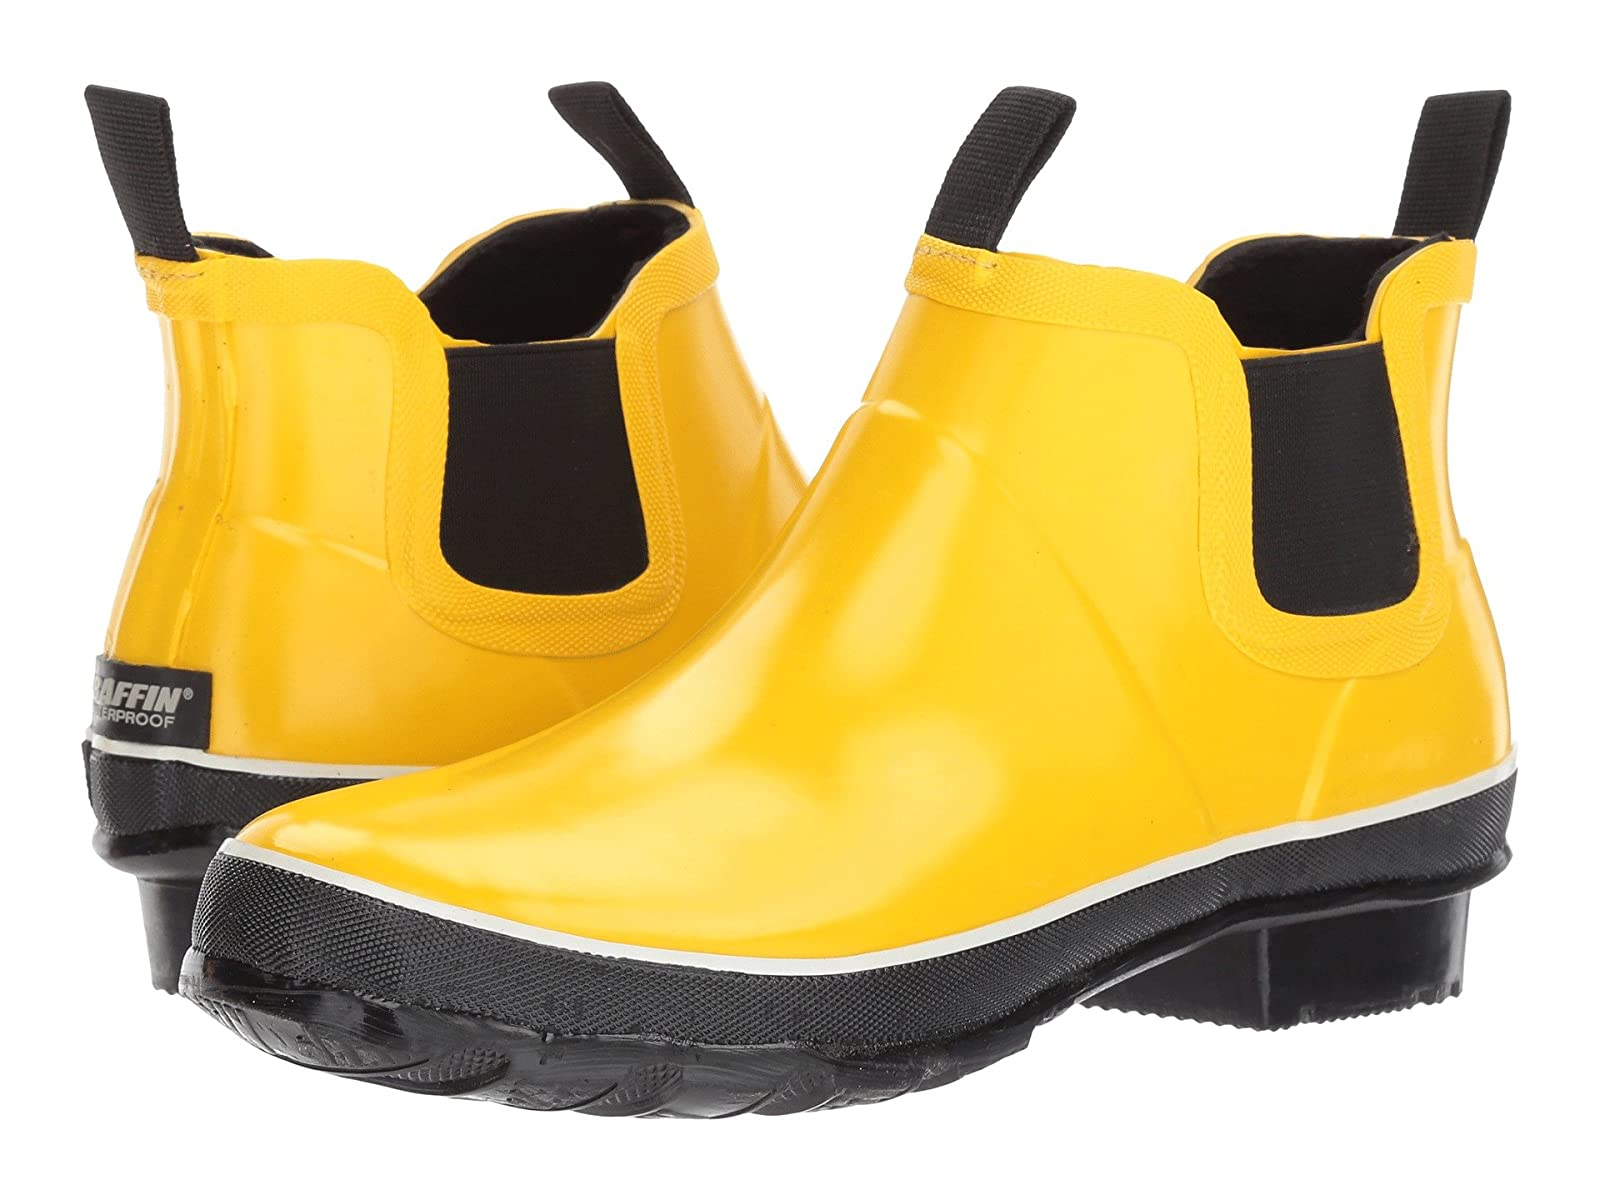 Baffin PondSelling fashionable and eye-catching shoes